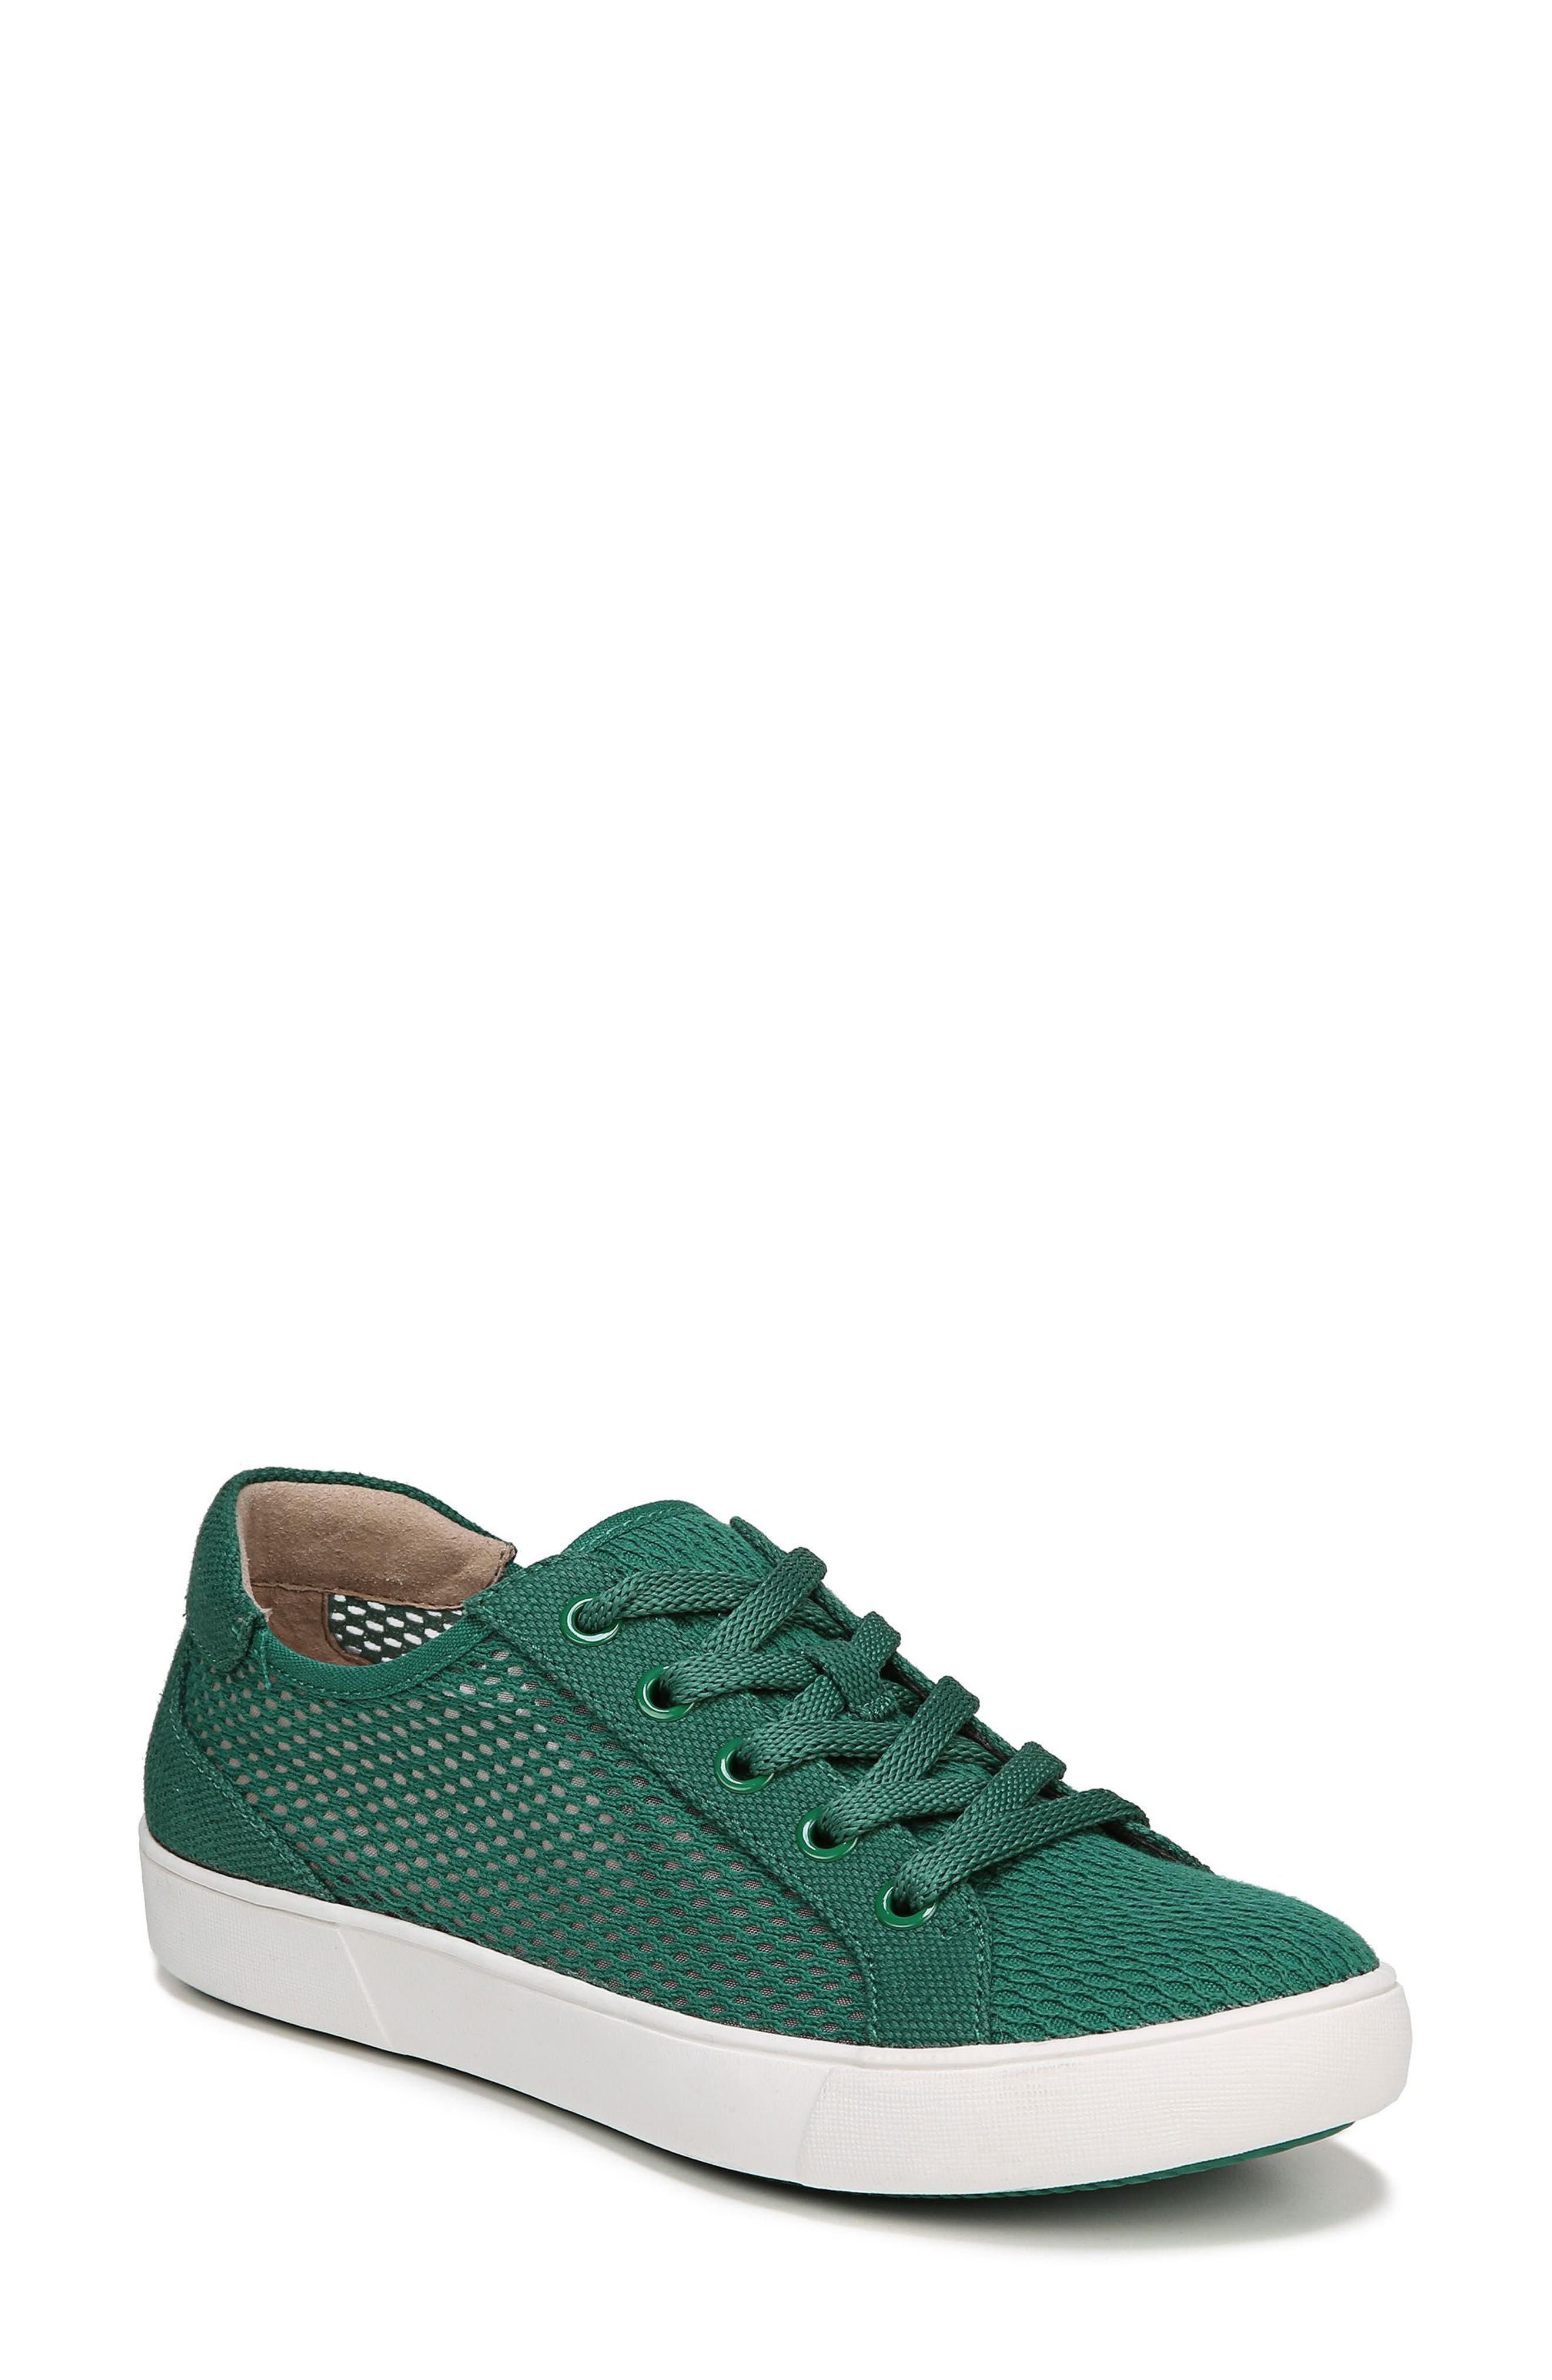 Morrison III Perforated Sneaker,                         Main,                         color, Green Leather